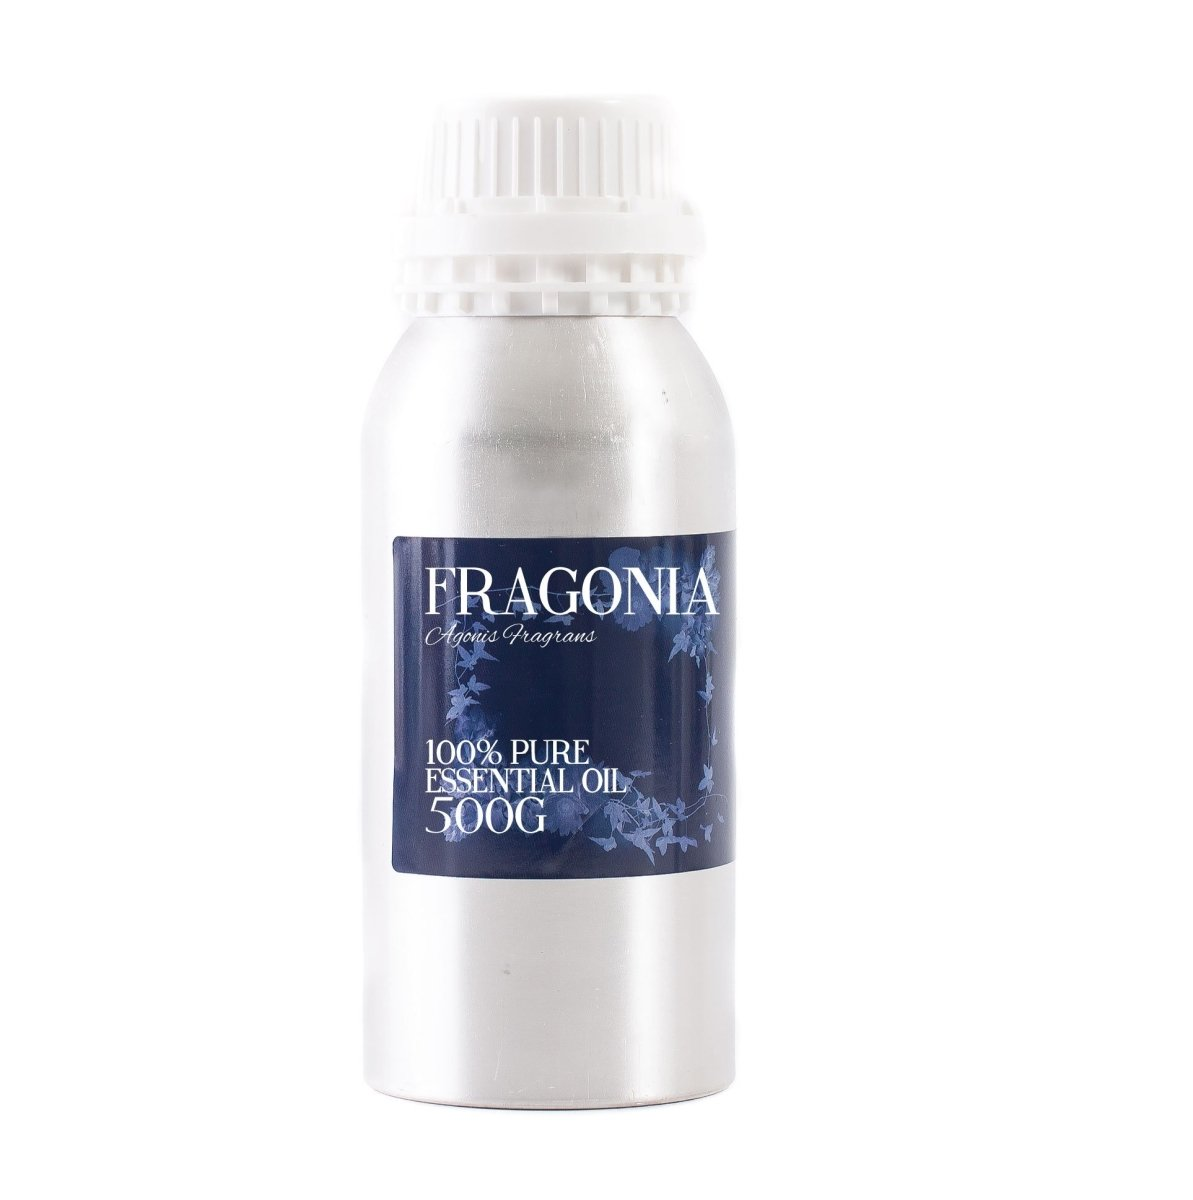 Fragonia Essential Oil - Mystic Moments UK